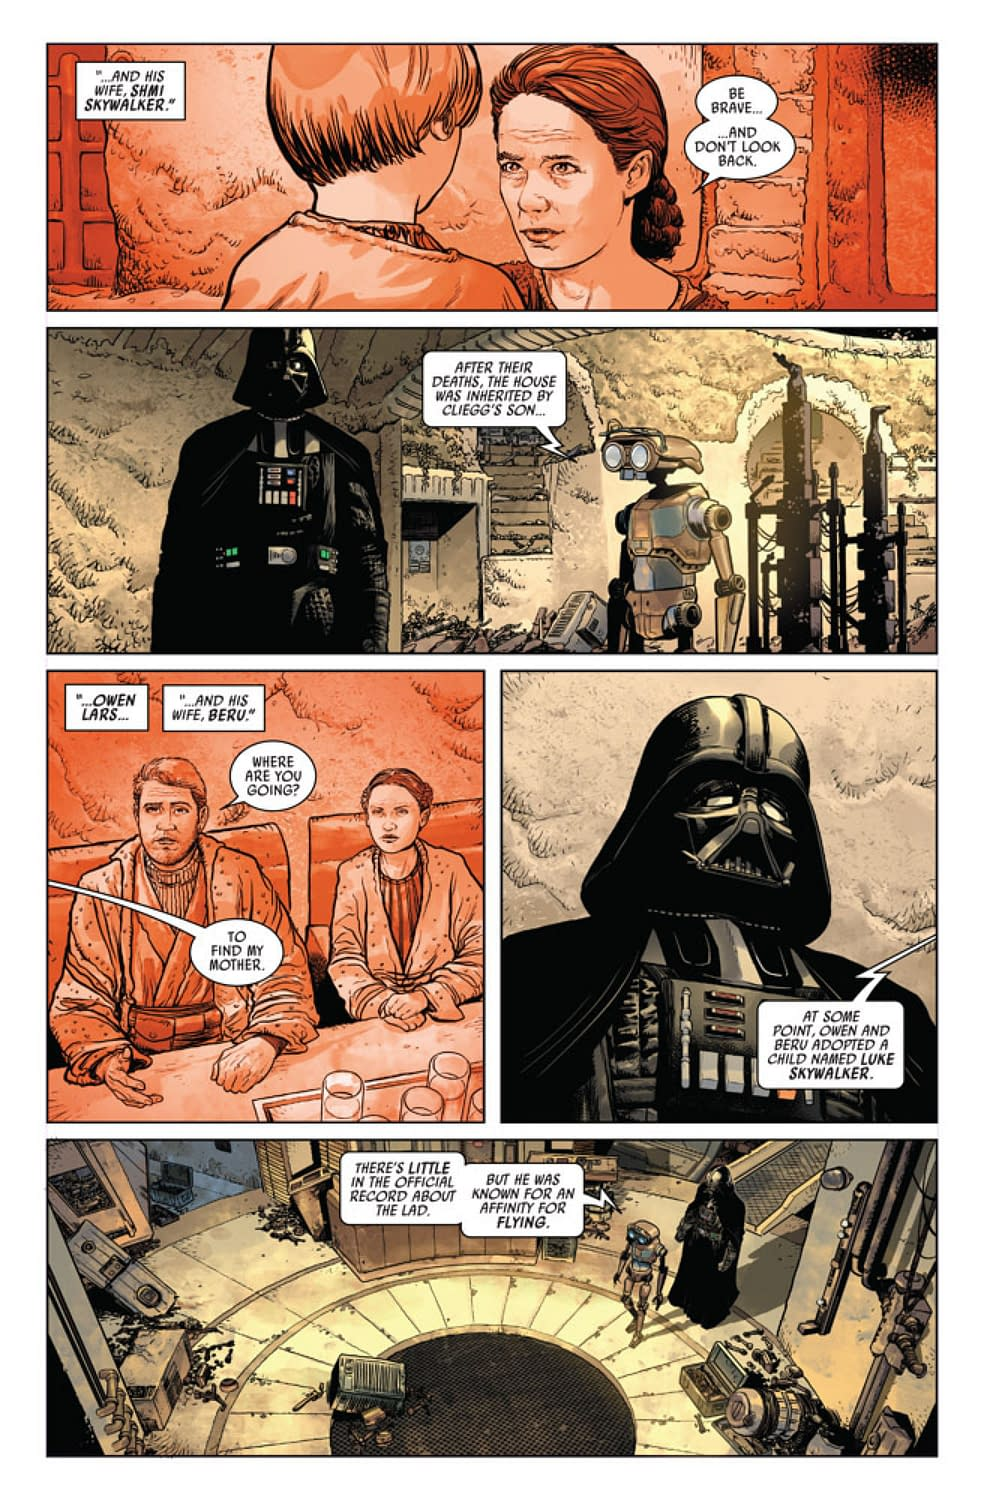 Darth Vader Haunted by Images of the Star Wars Prequels in New Darth Vader #1 [Preview]